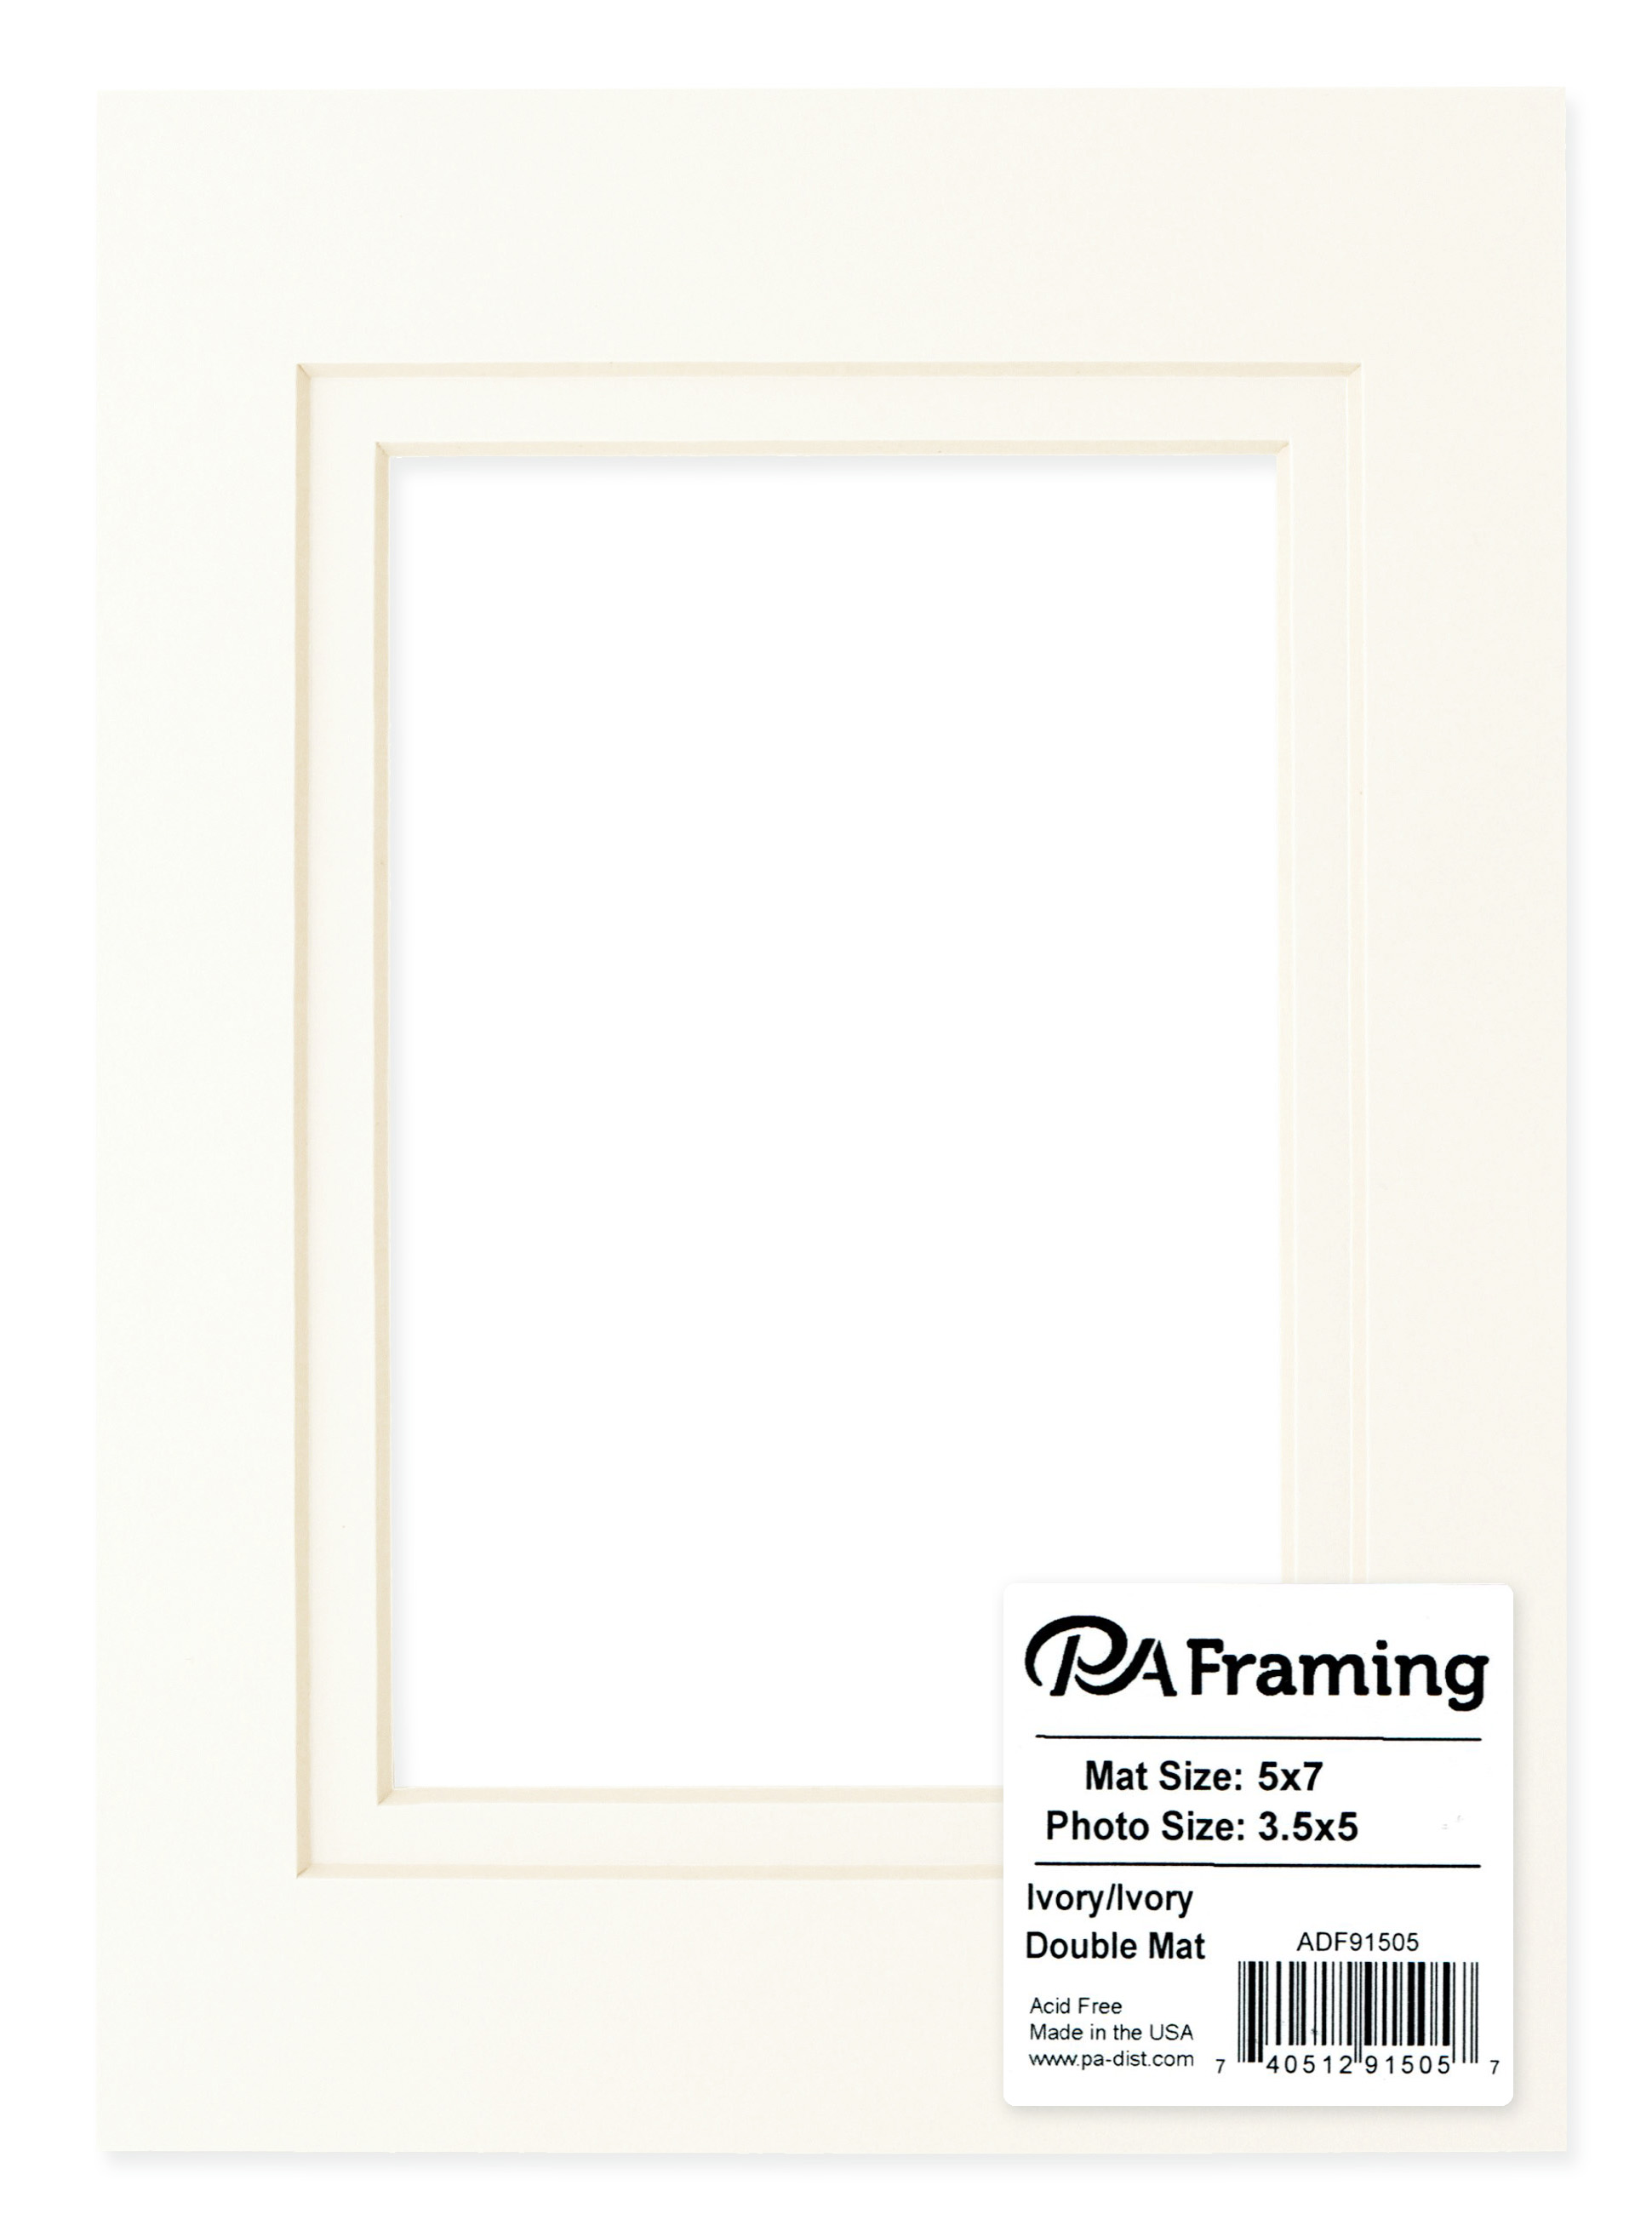 Cream Core//Ivory Upper and Inner Mat Double Mat 5 x 7 Inches Frame for 3.5 x 5 Inches Photo Art Size PA Framing